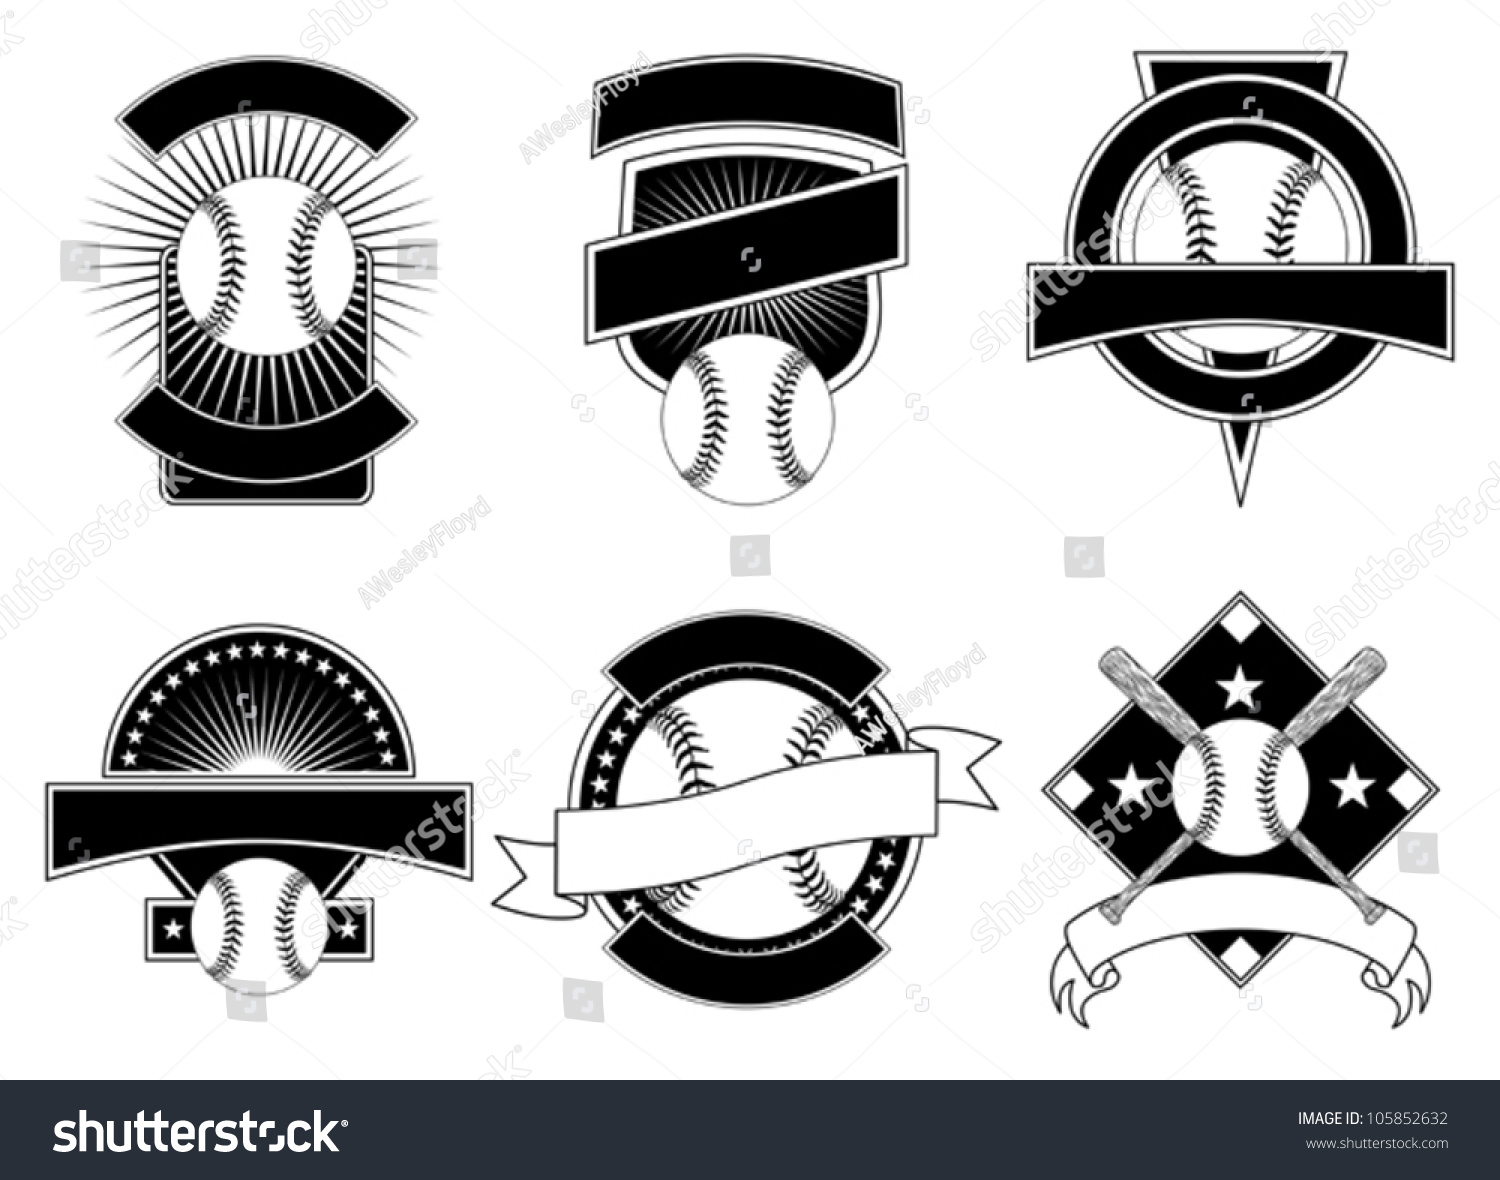 baseball design templates is an illustration of six baseball design templates for use with your own - Baseball Shirt Design Ideas